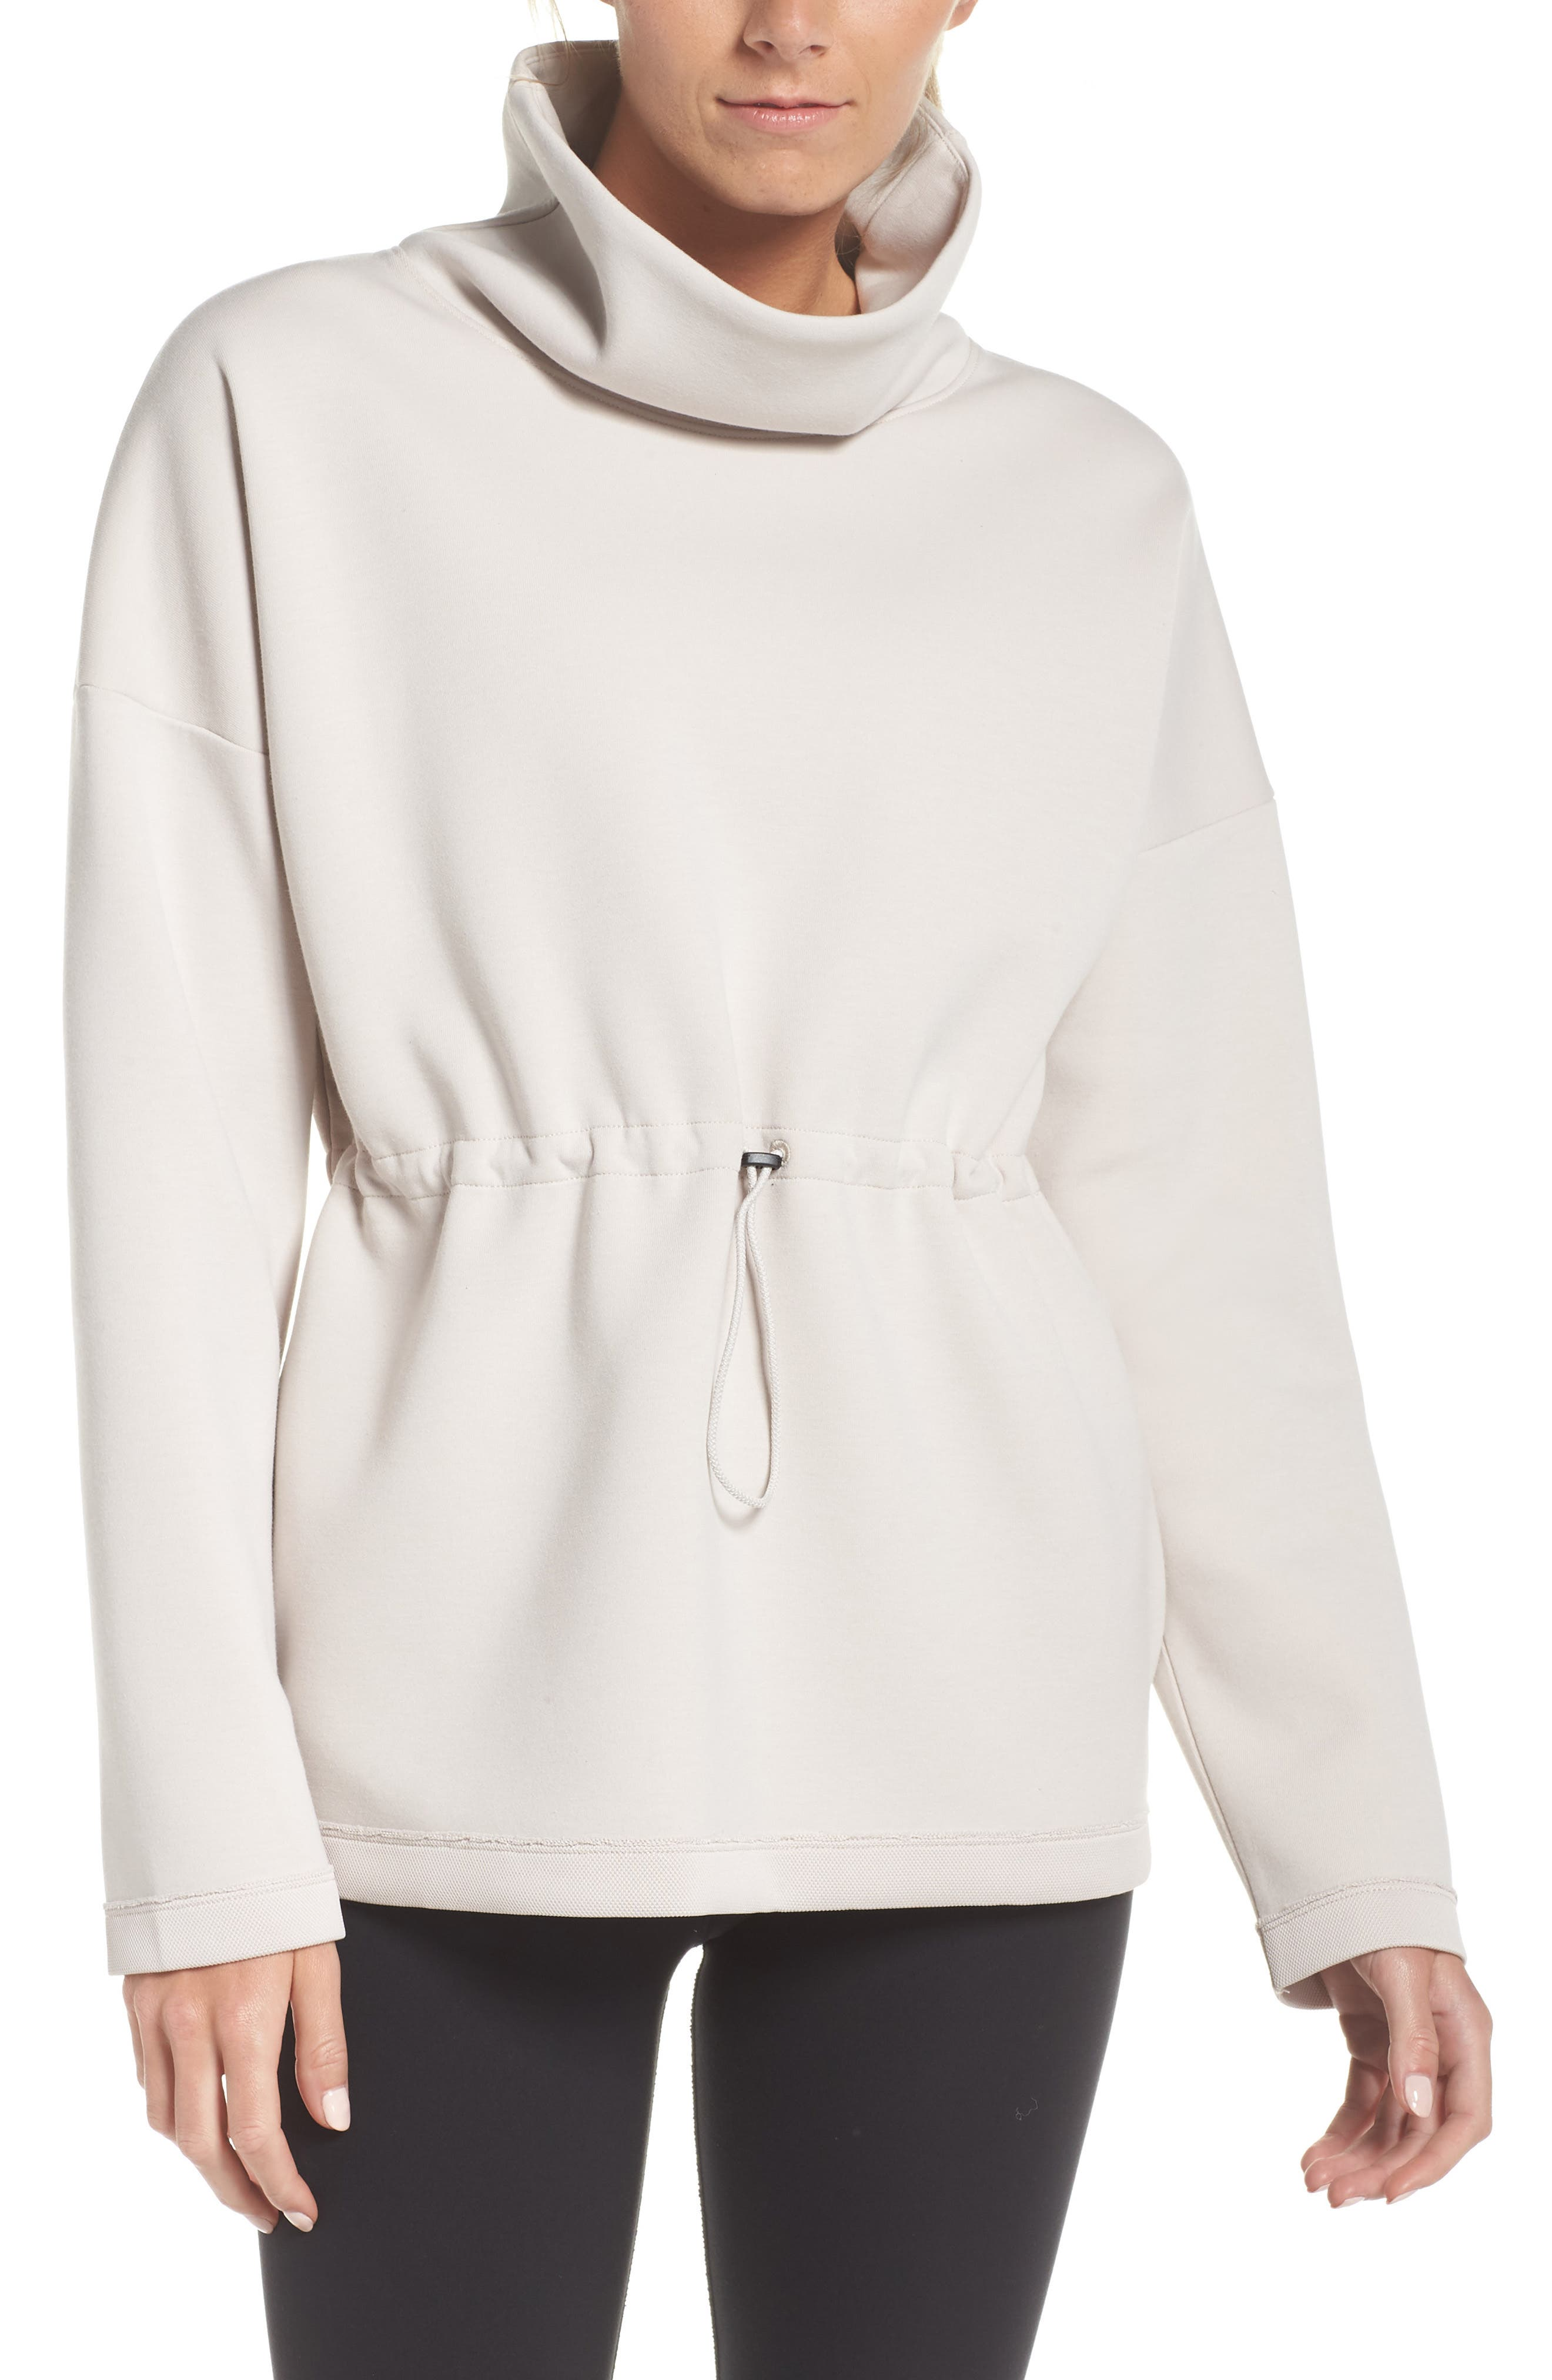 NIKE Dry Therma Flex Pullover, Main, color, 250